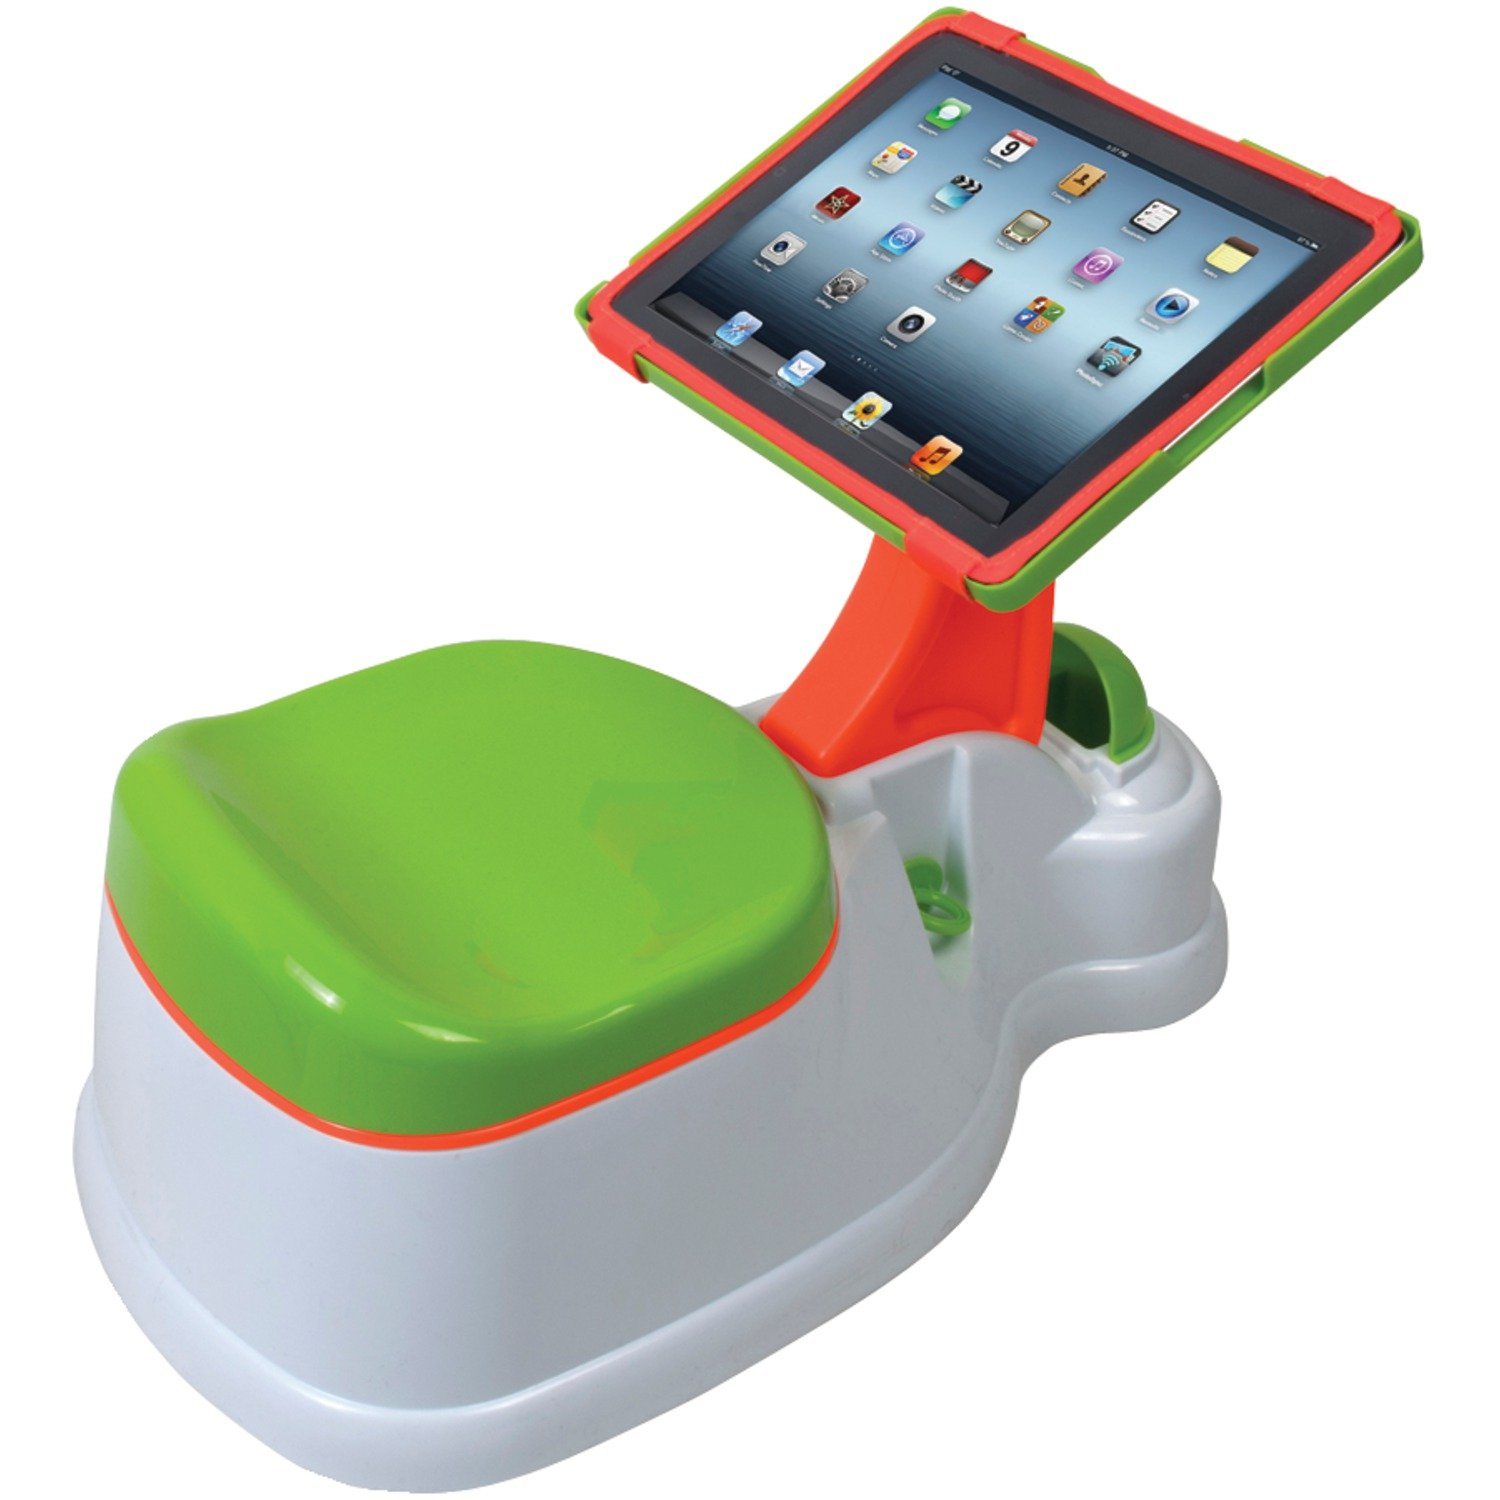 CTA Digital 2-in-1 iPotty with Activity Seat for iPad PAD-POTTY